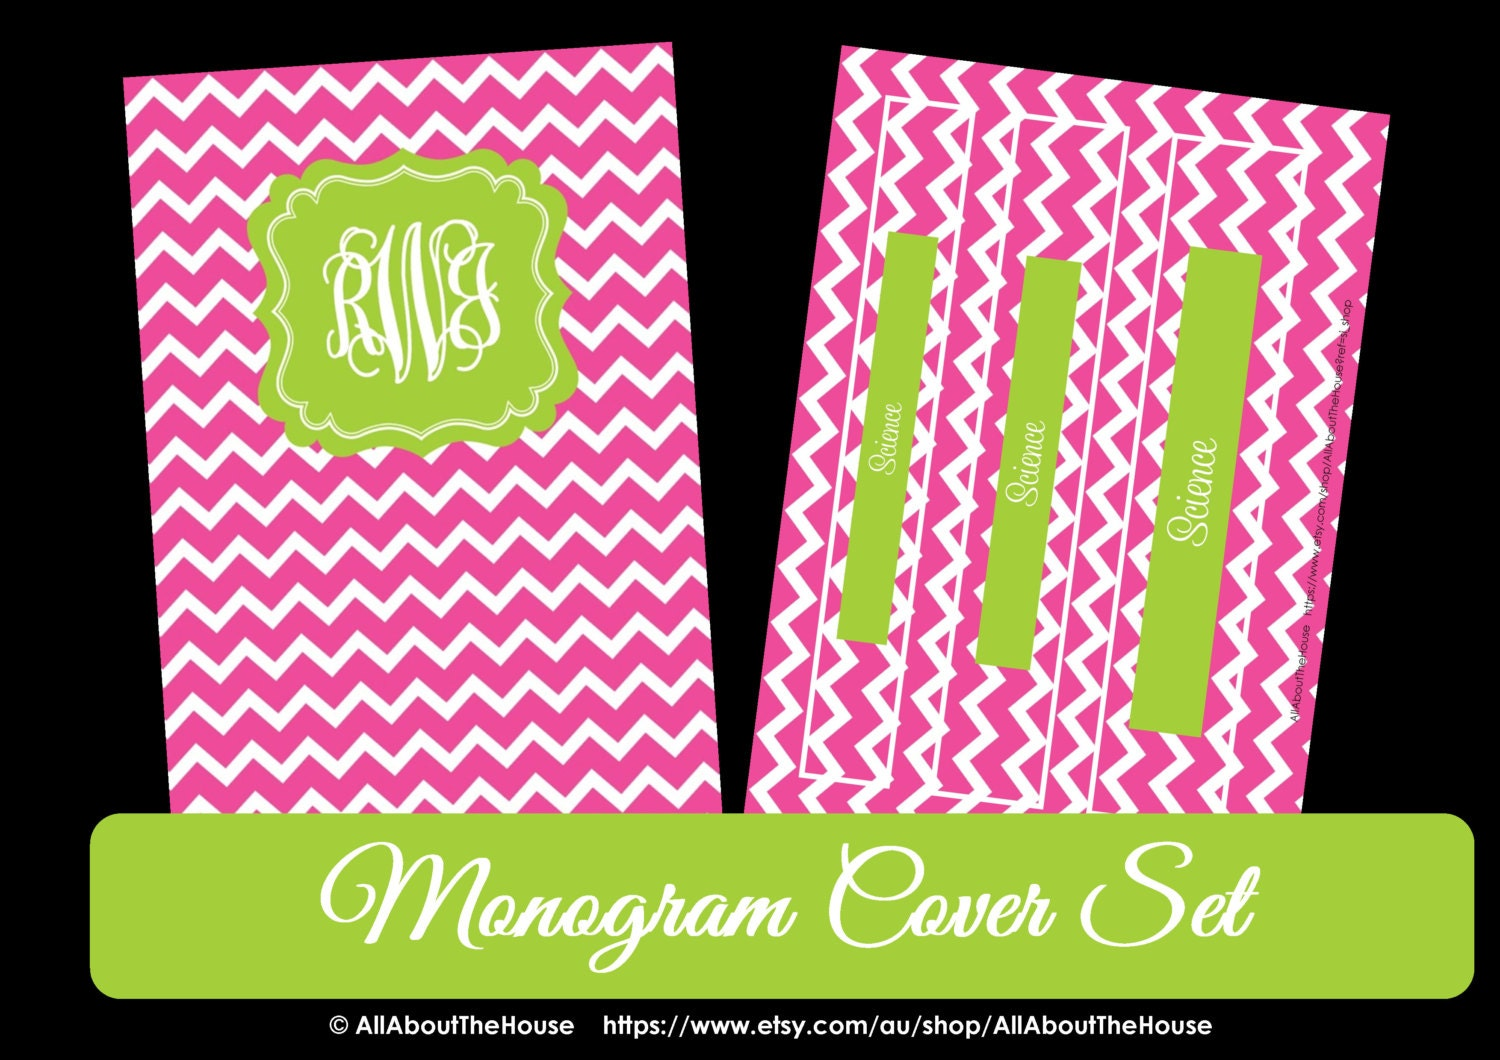 This is an image of Obsessed Printable Monogram Binder Cover